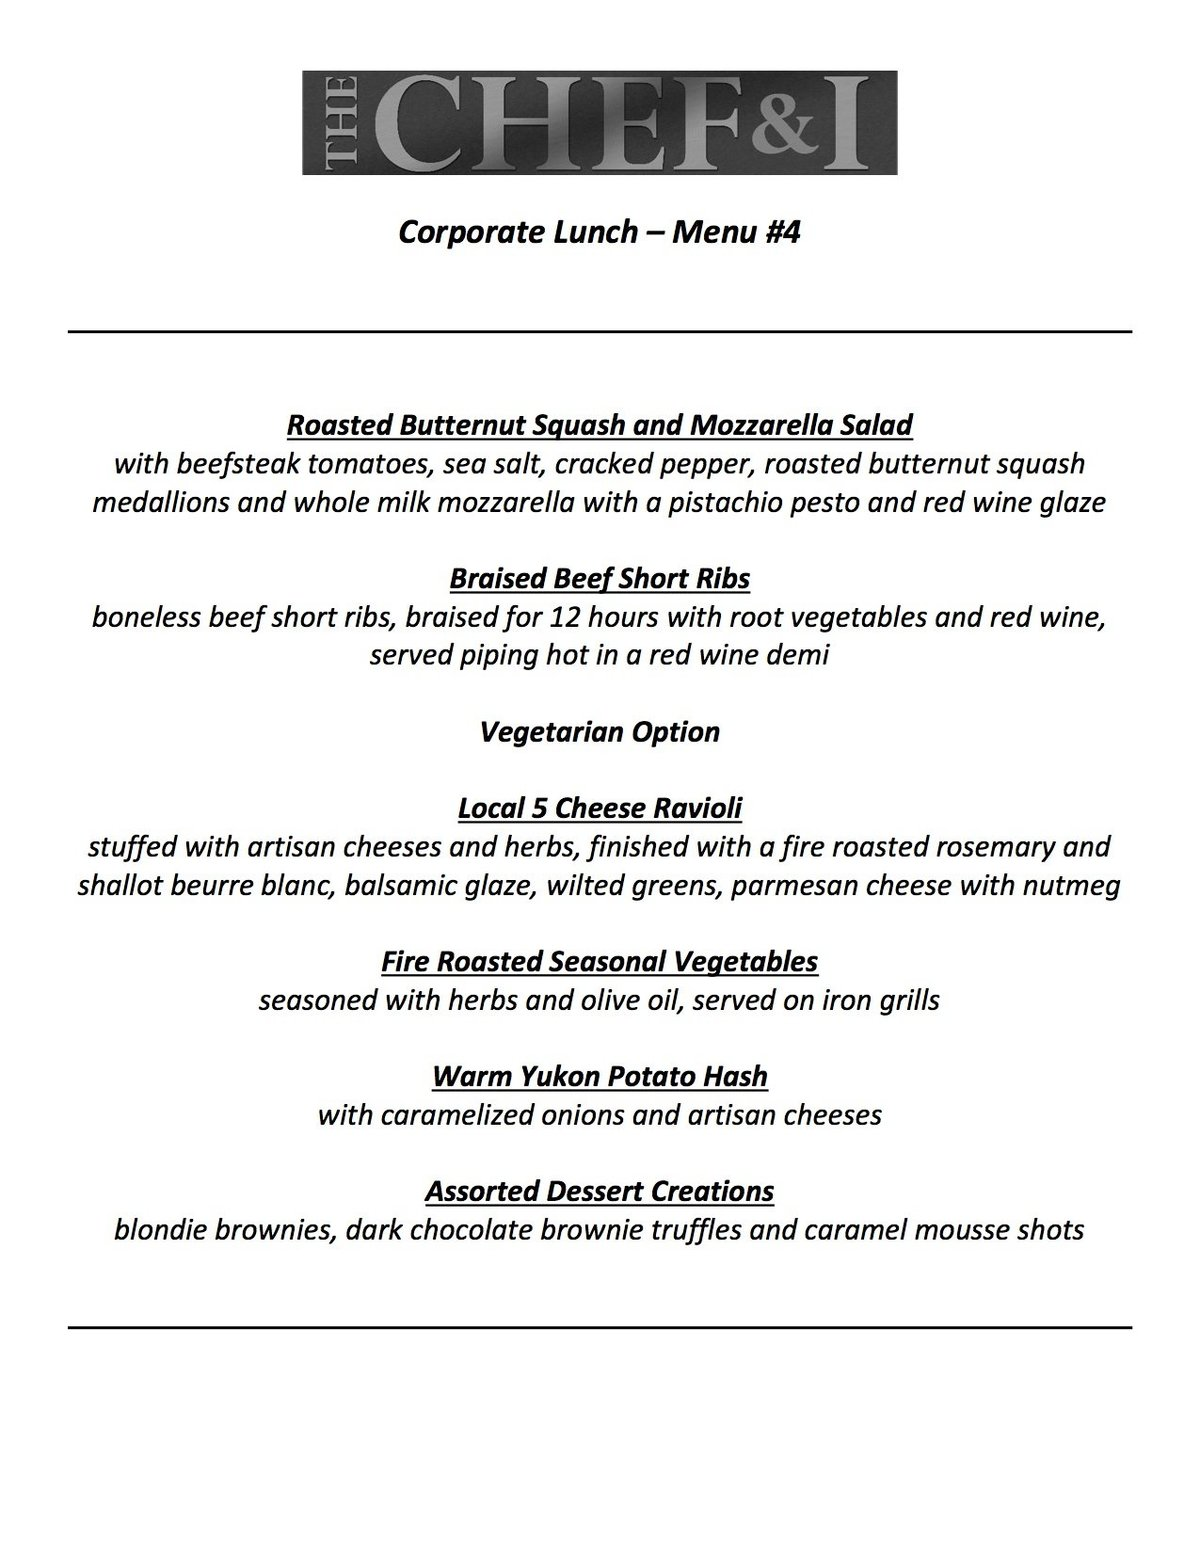 Corporate Lunch Menu 4